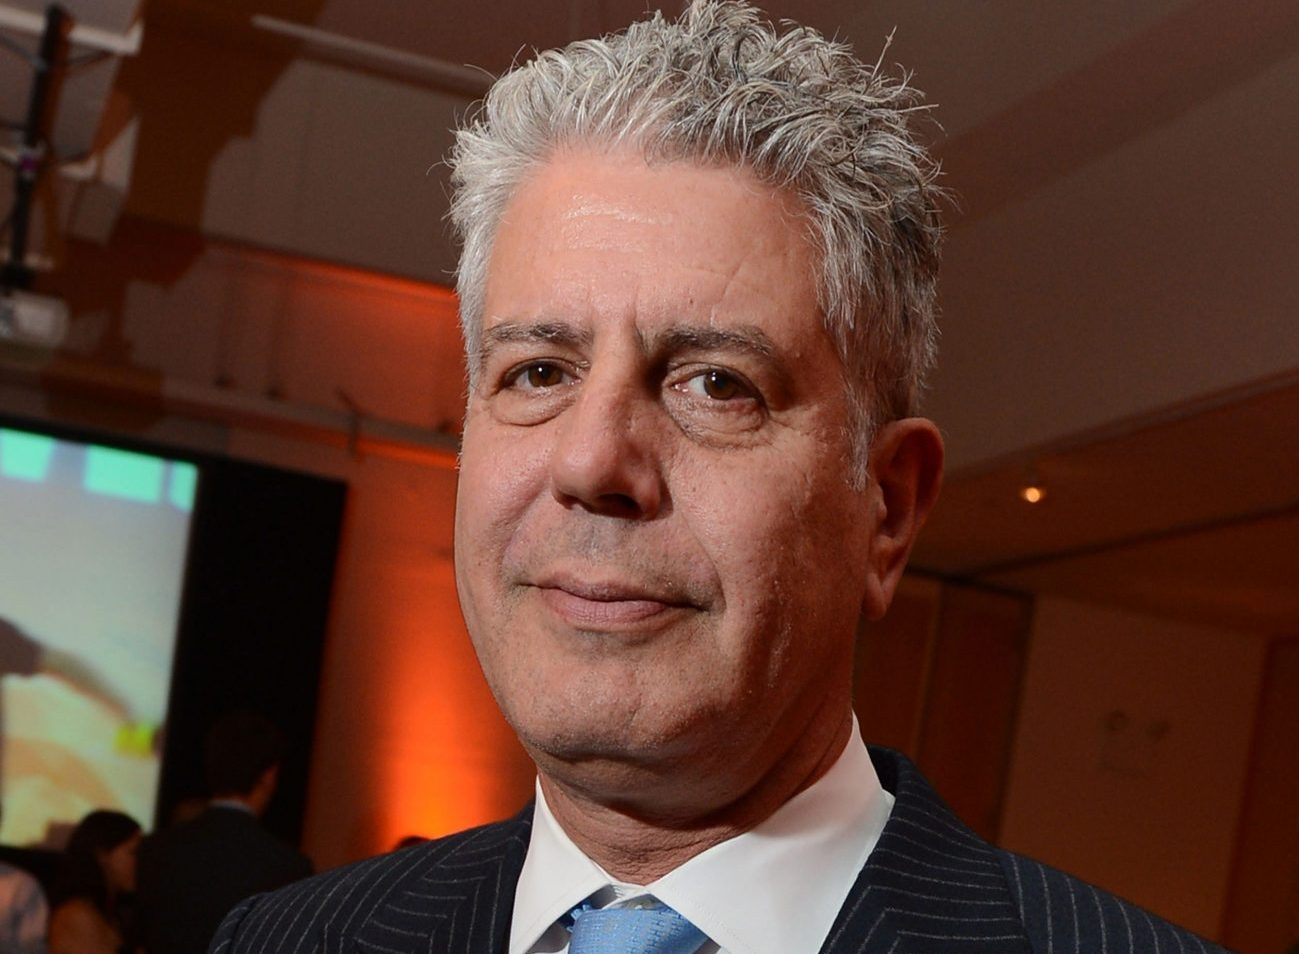 Anthony Bourdain (Getty Images)